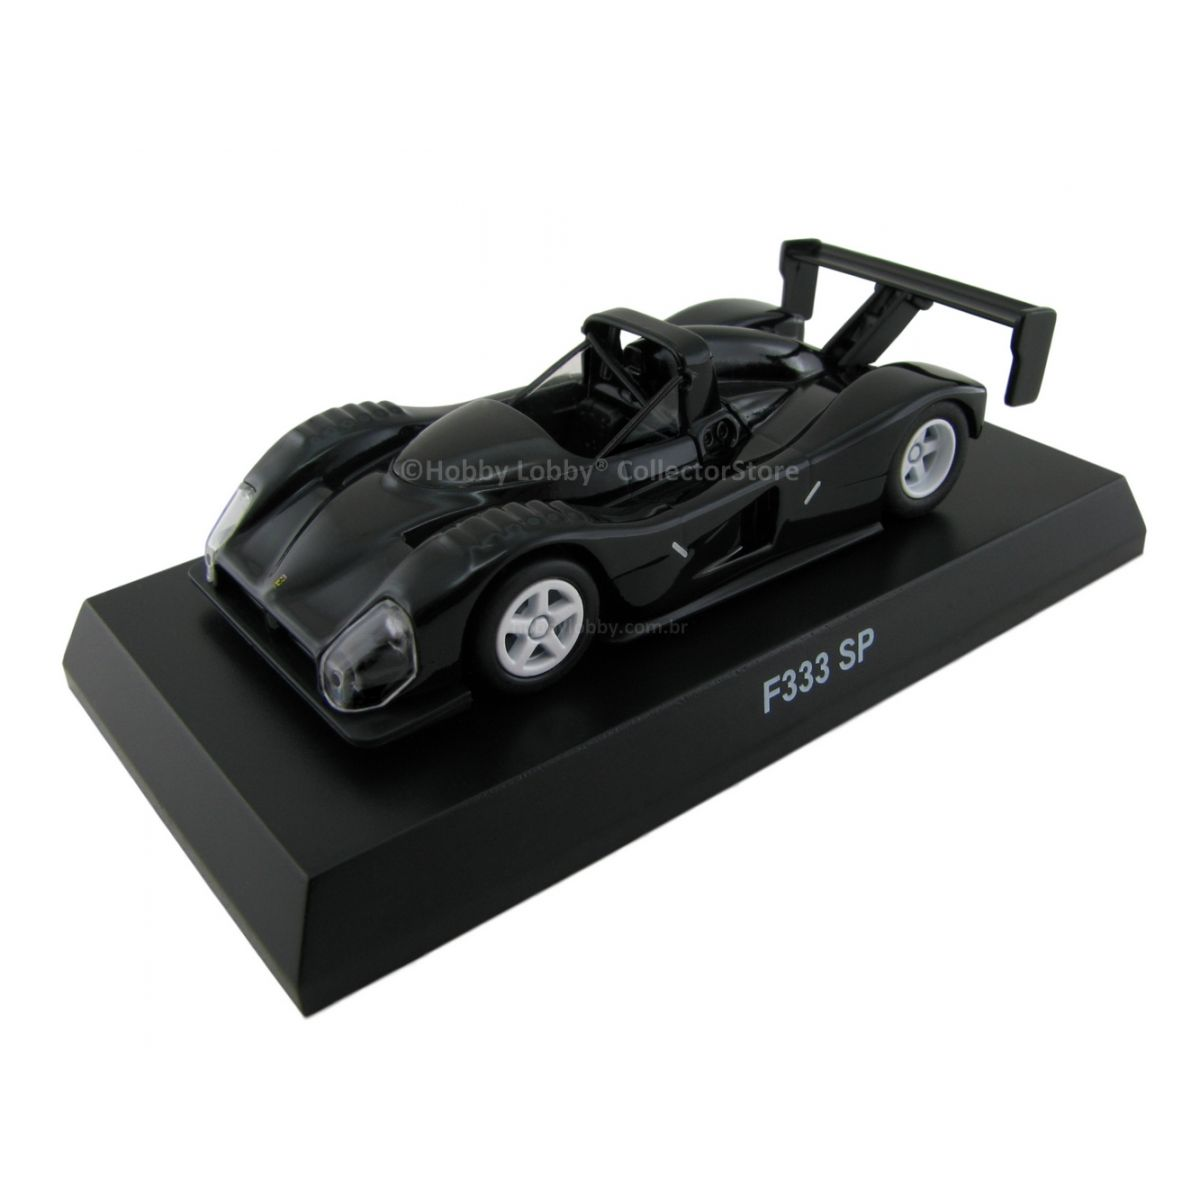 Kyosho - Ferrari Minicar Collection VI - Ferrari F333 SP [preta]  - Hobby Lobby CollectorStore